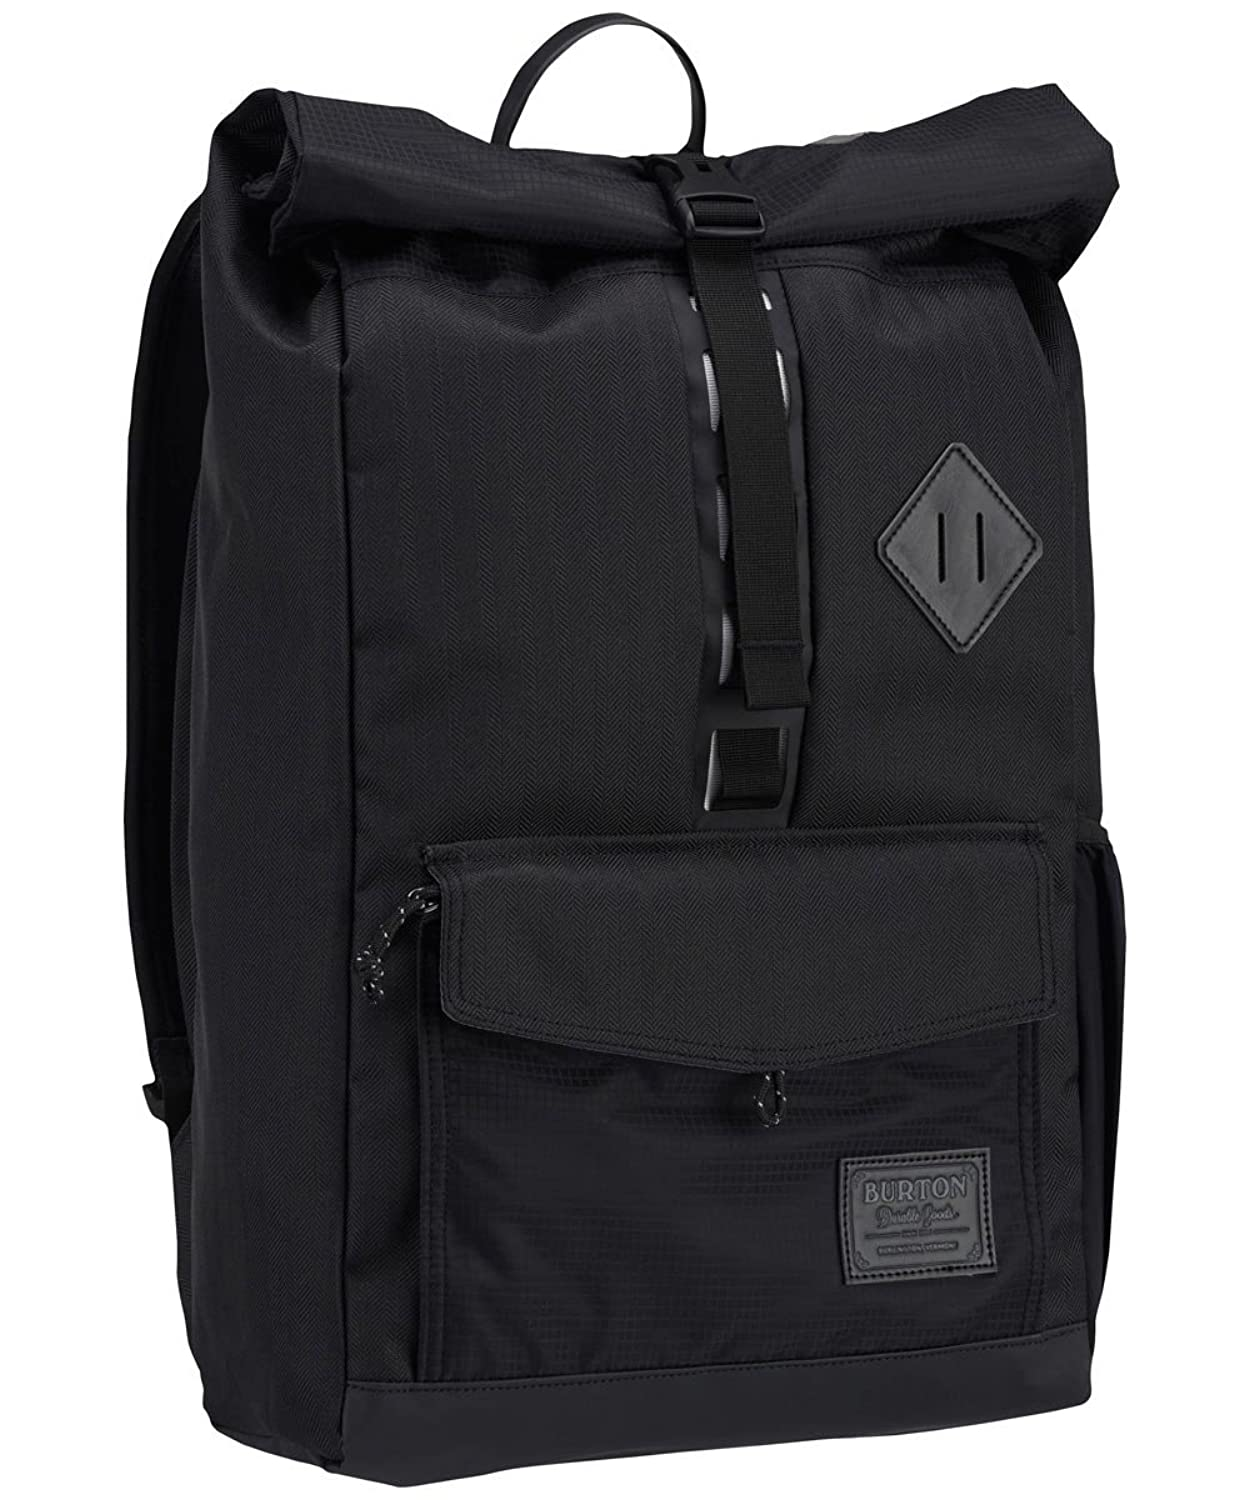 [バートン] リュック EXPORT PACK  25L 17296103 B0783NK6T9  TRUE BLK HTHR TWILL